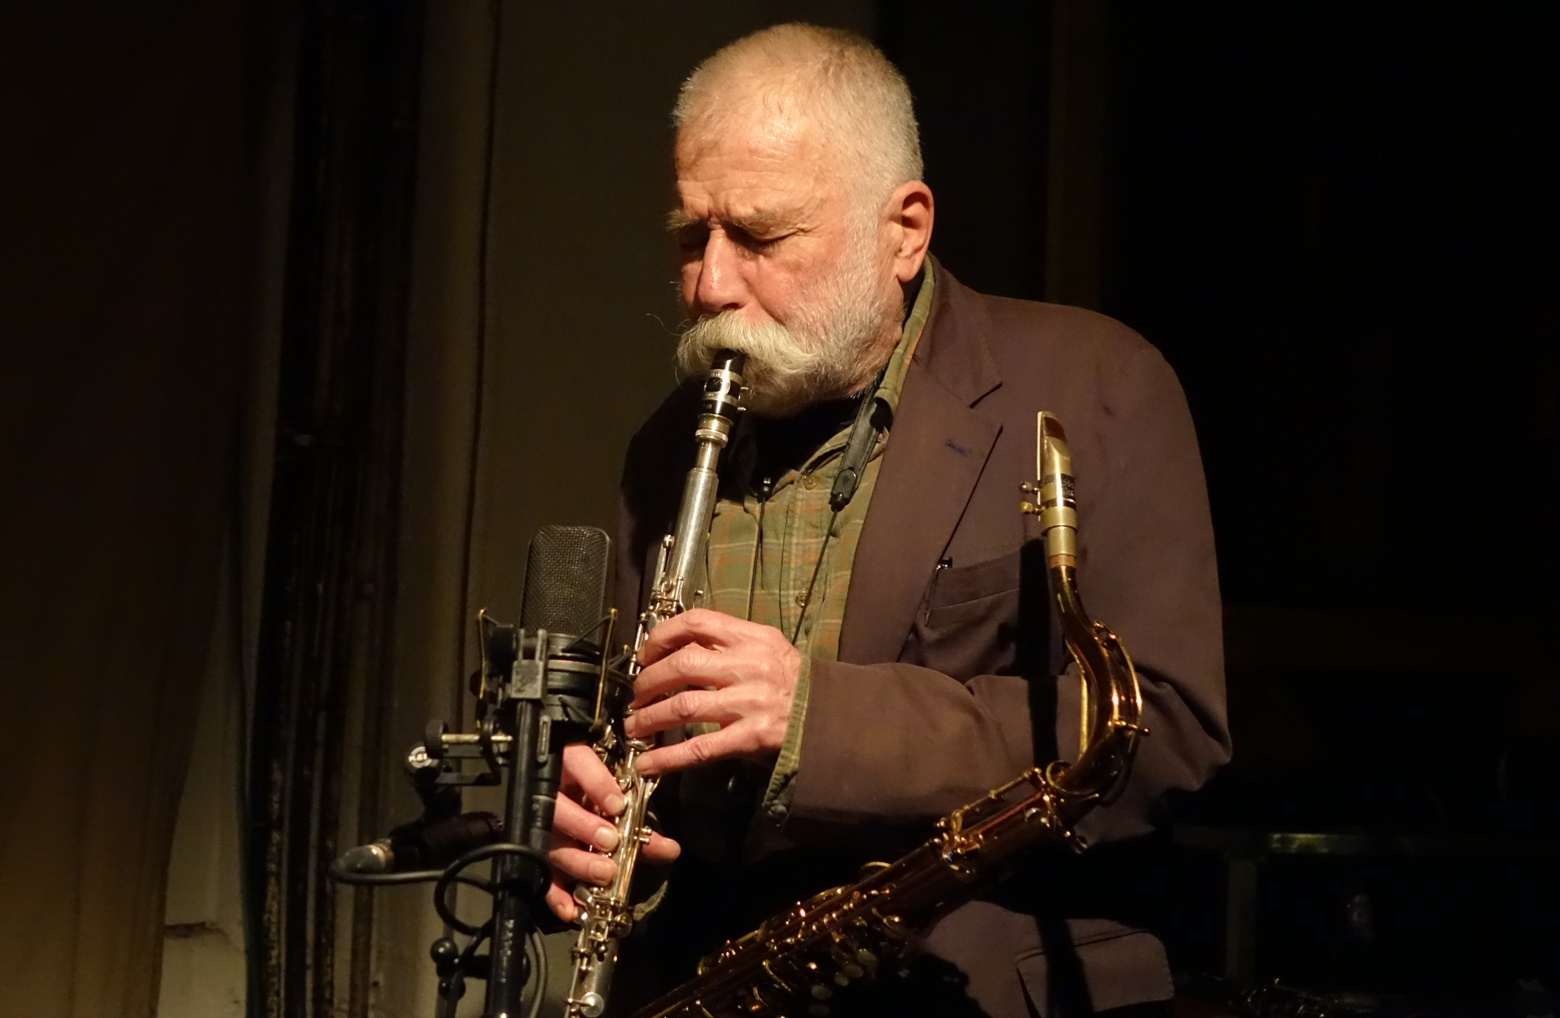 Peter Brötzmann at Cafe Oto, London in March 2018